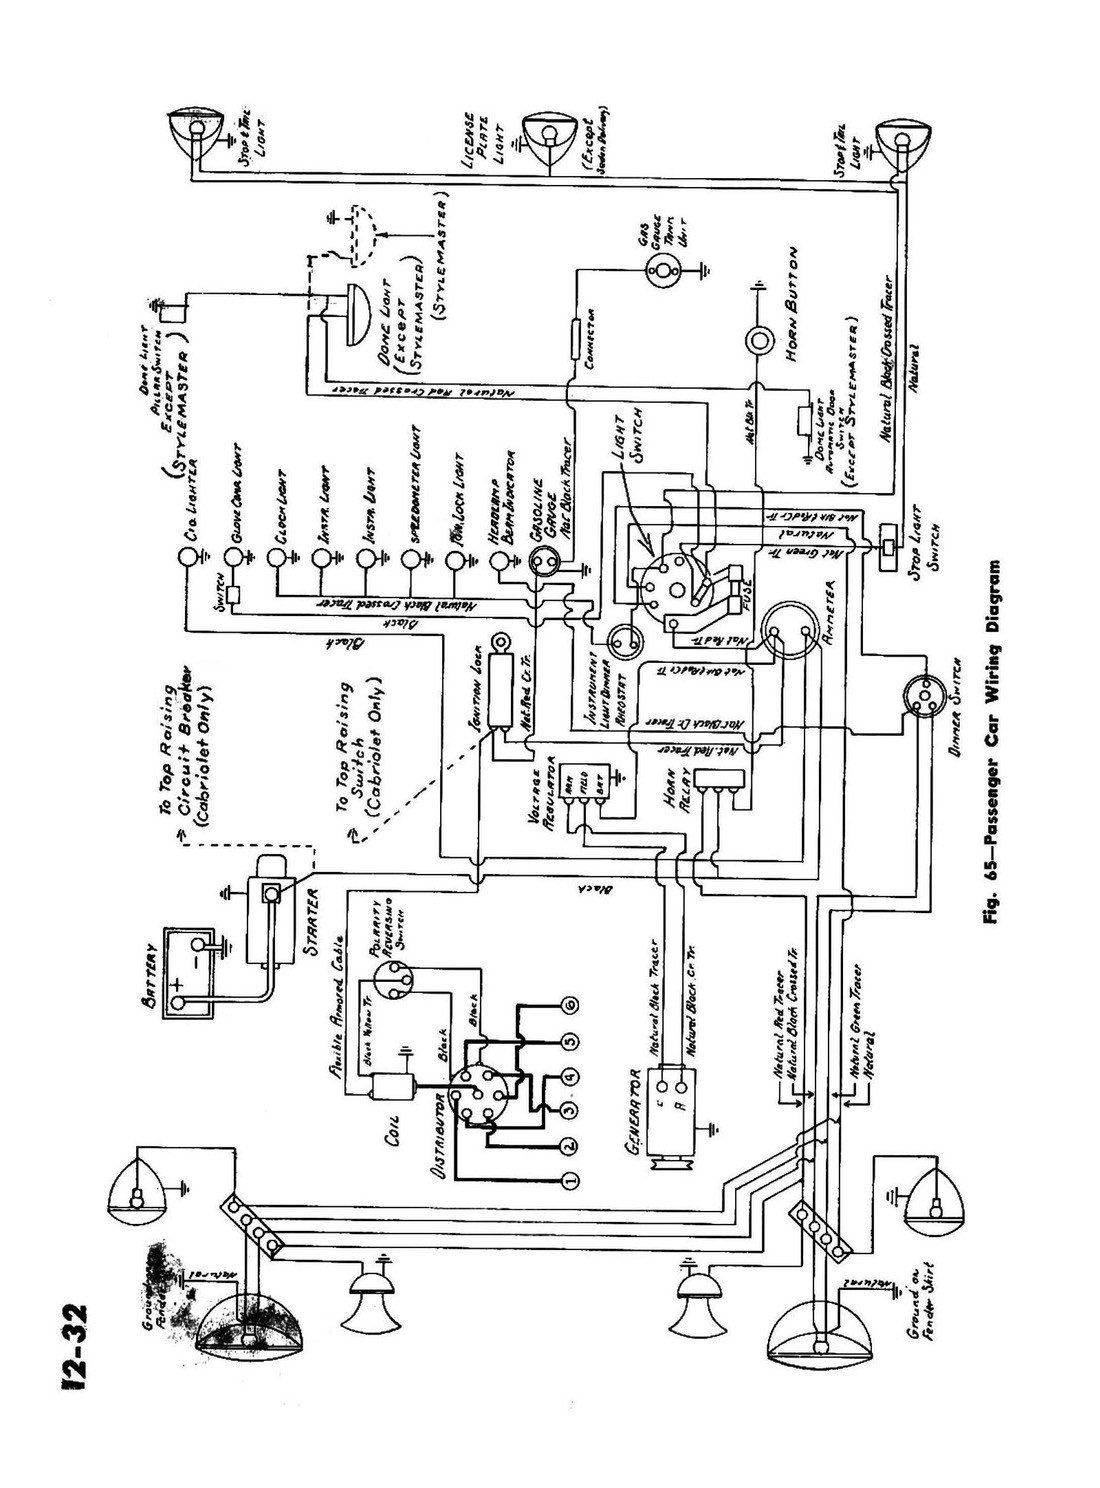 hight resolution of wiring diagram electric schematic circuit building fancy auto pertaining to auto electrical schematic